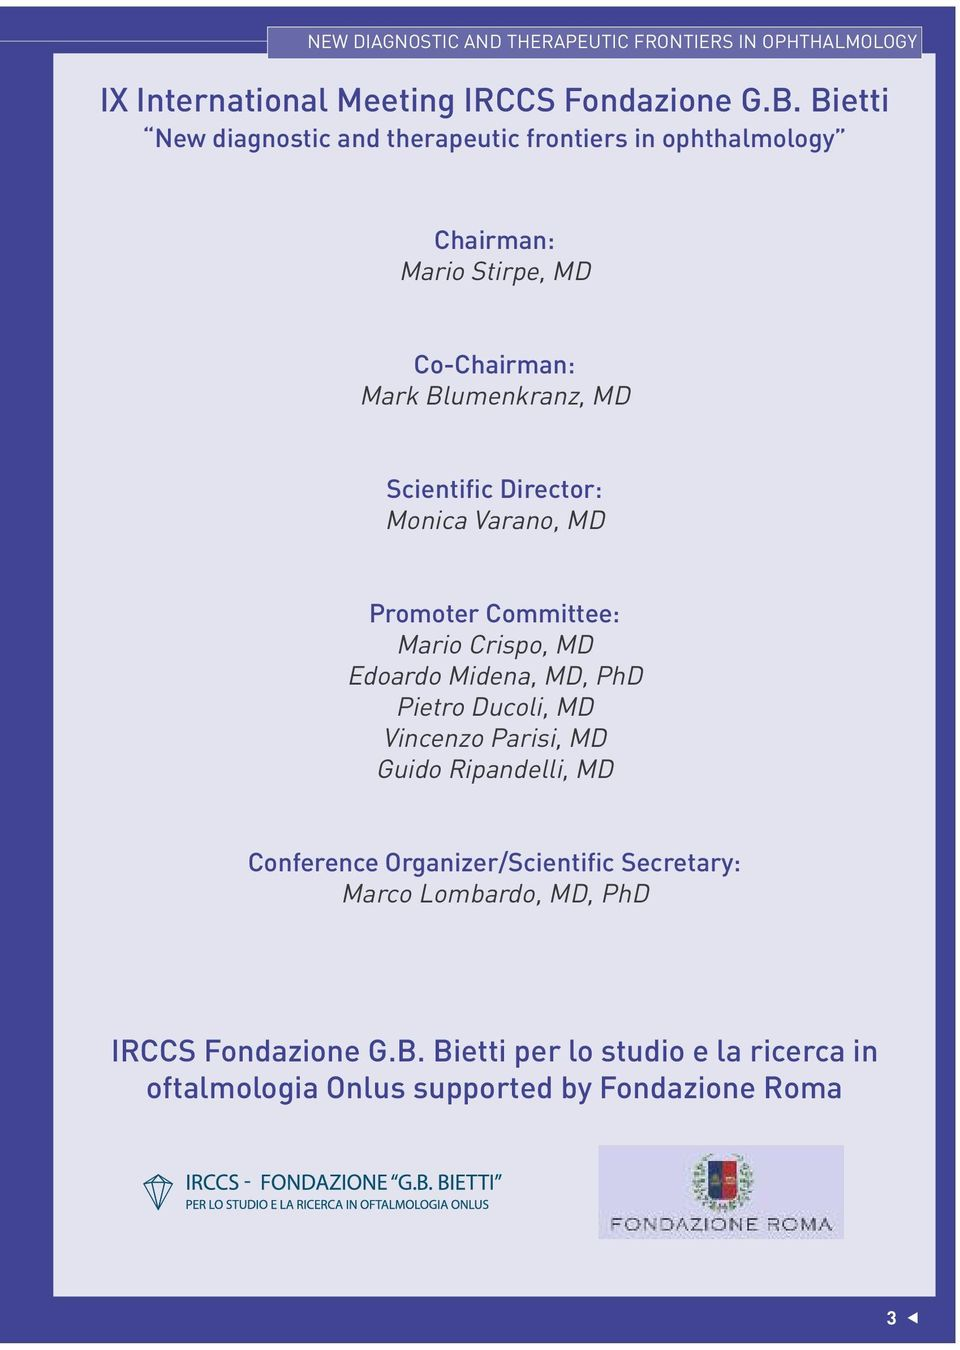 Director: Monica Varano, MD Promoter Committee: Mario Crispo, MD Edoardo Midena, MD, PhD Pietro Ducoli, MD Vincenzo Parisi, MD Guido